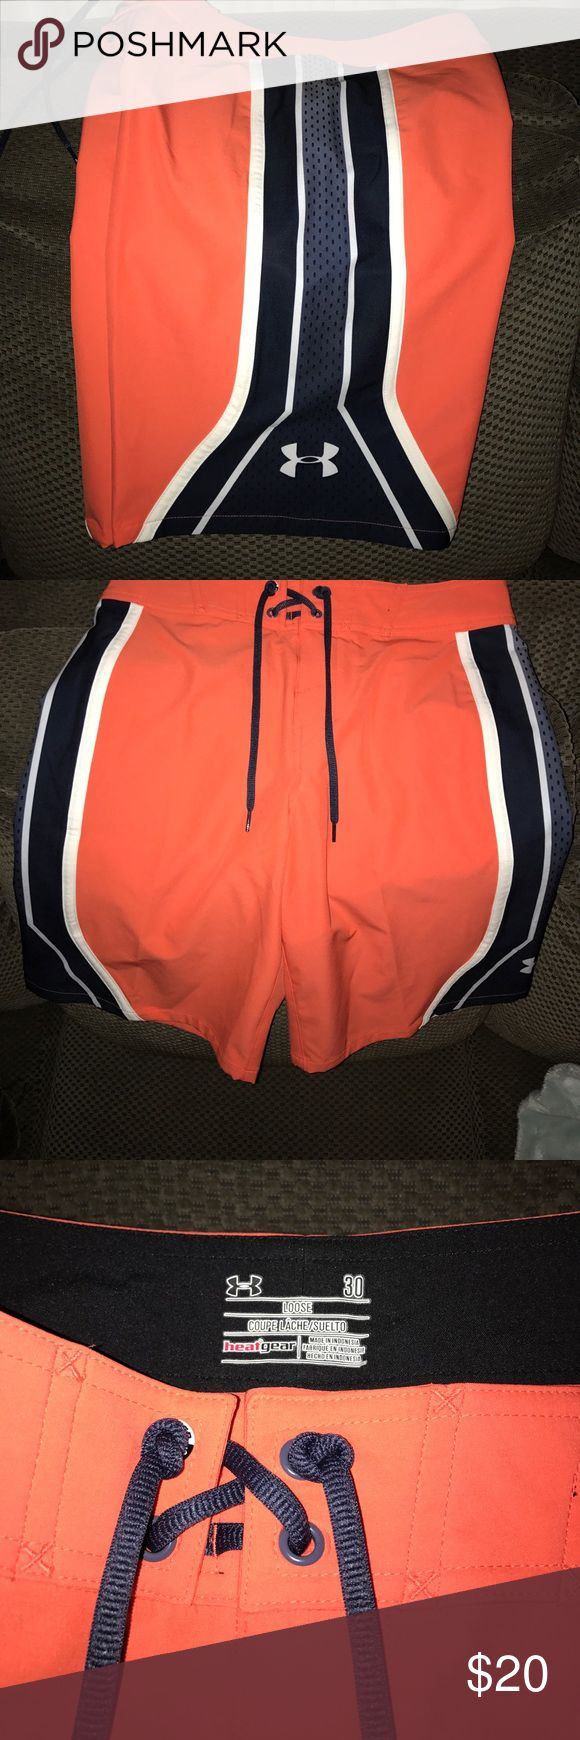 Excellent condition! men's board shorts🏊🏼 Under Armour men's loose fit board shorts🏄🏼.  Size 30 waist.  Velcro ties waist.  Excellent condition only worn once or twice.  Orange with black and white stripes. Under Armour Swim Board Shorts